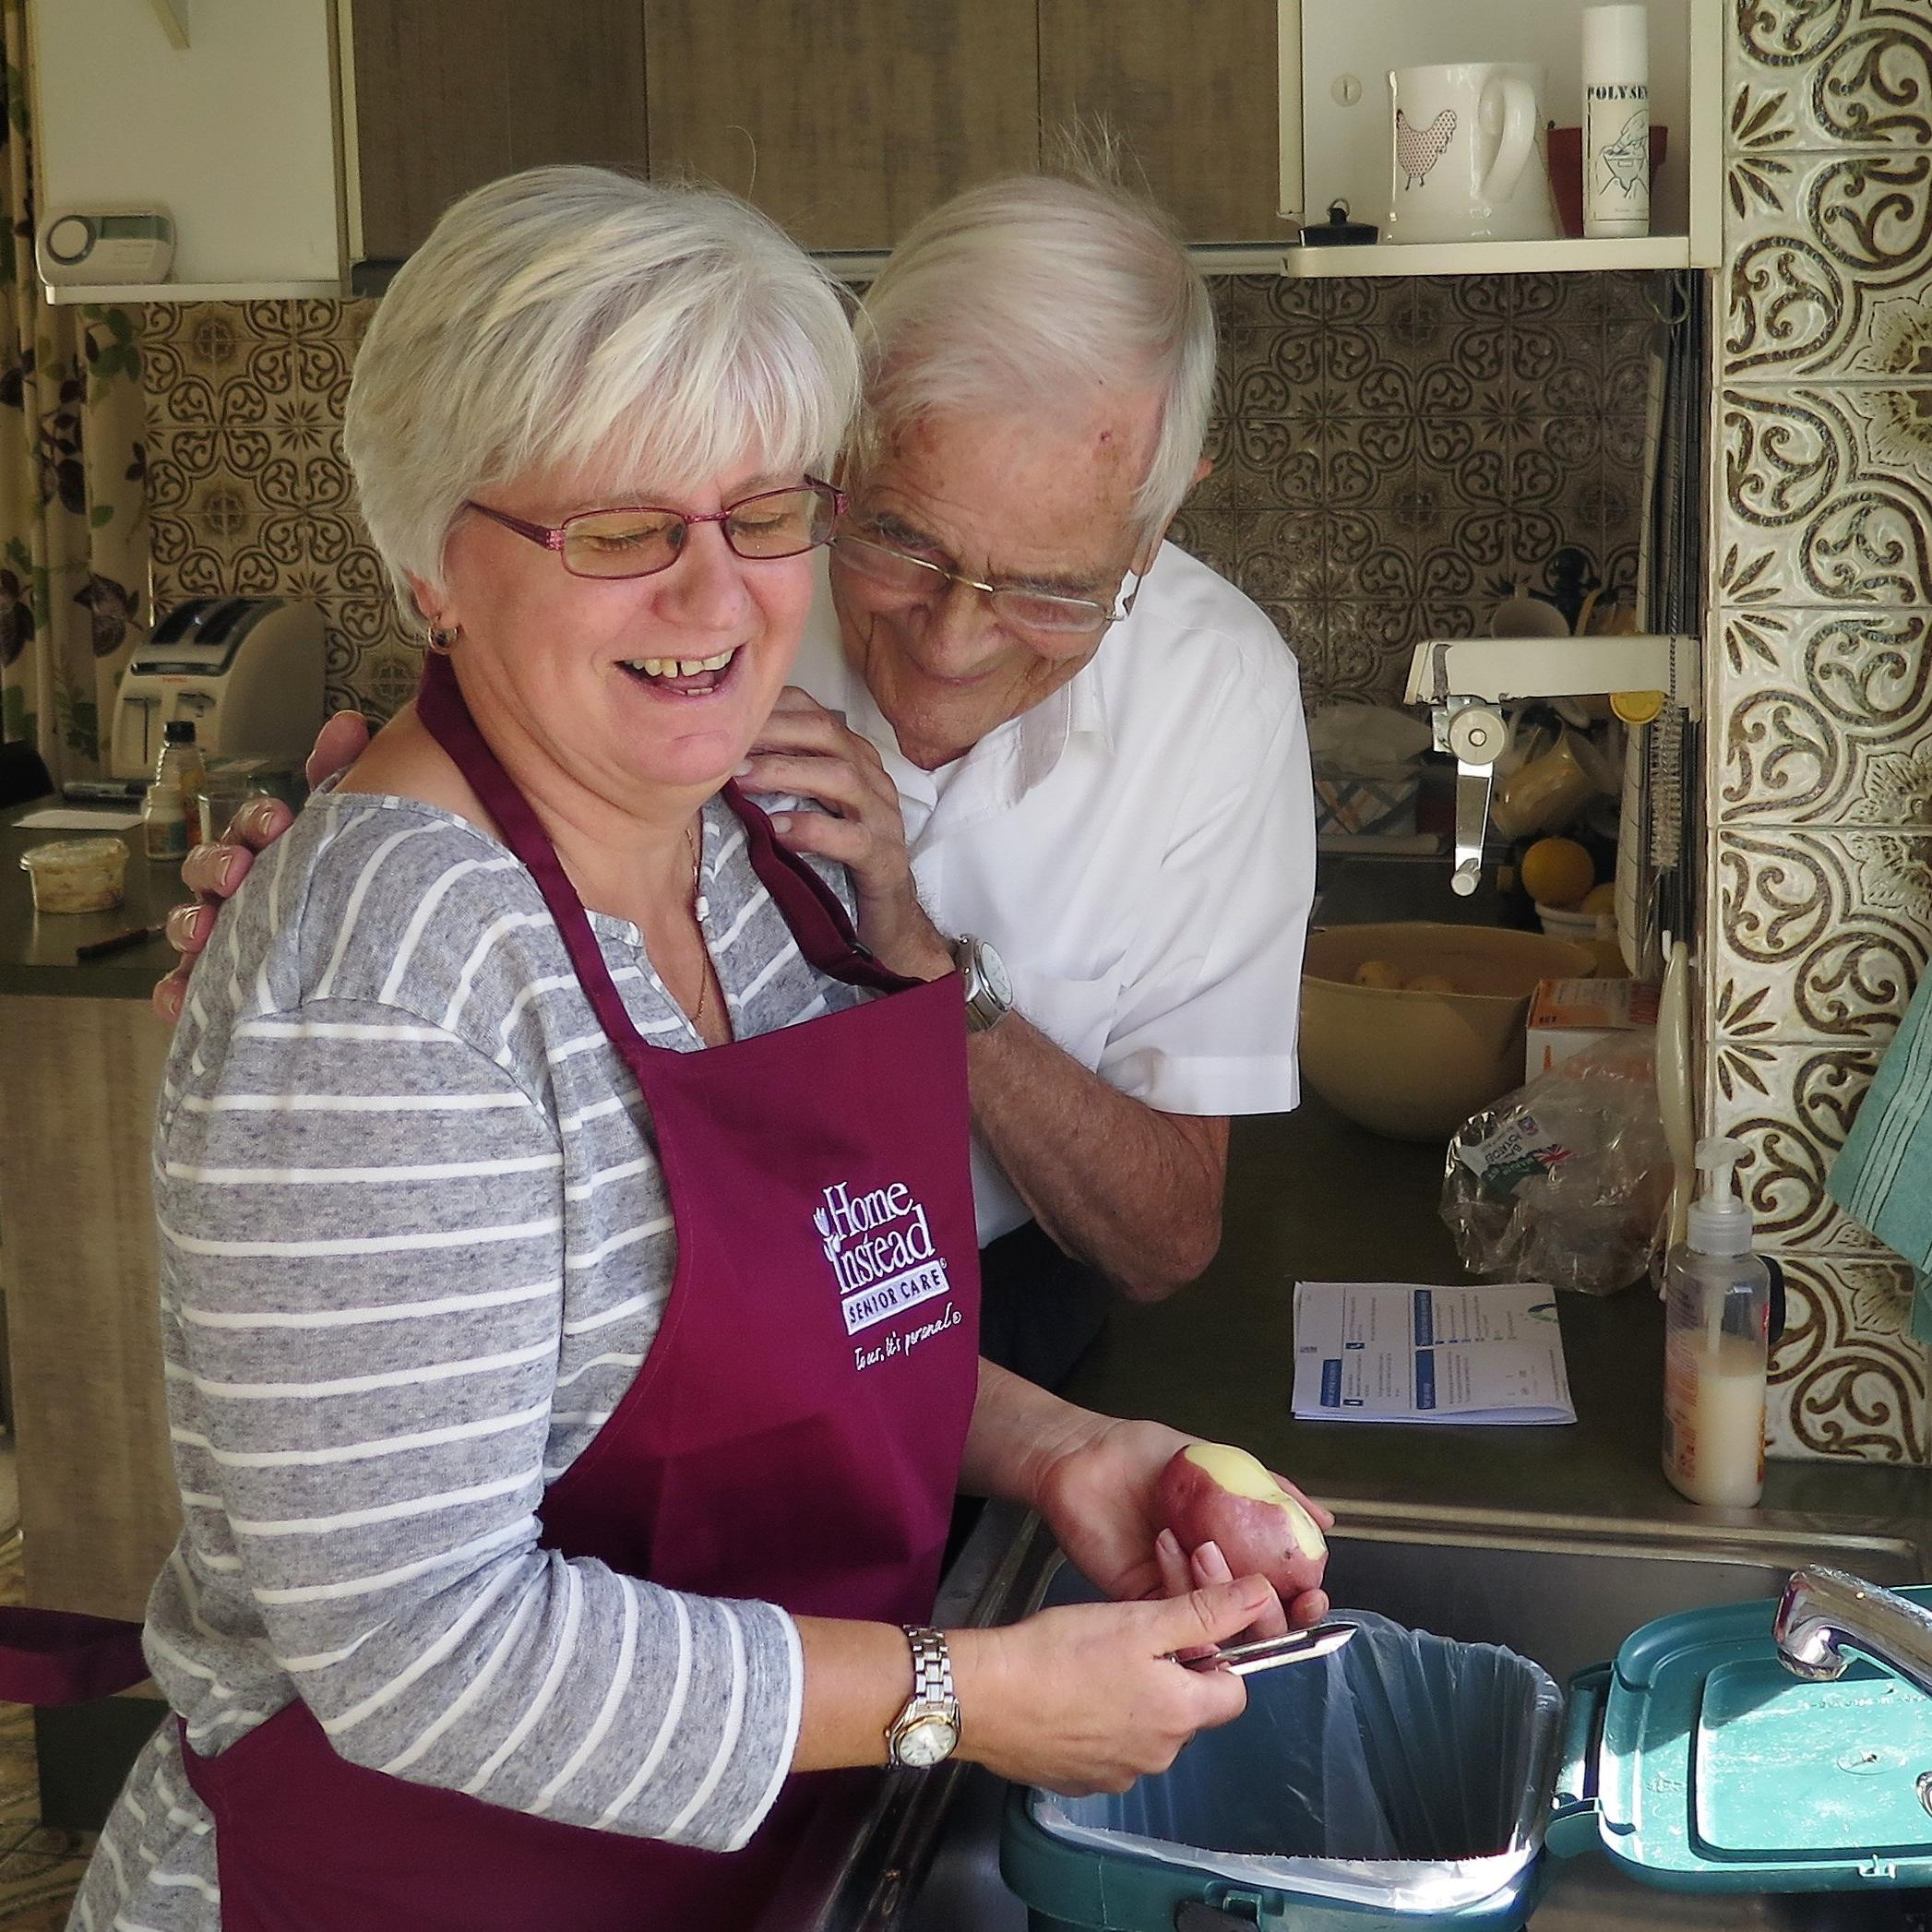 CAREGiver Elaine helping client Ted prepare a meal